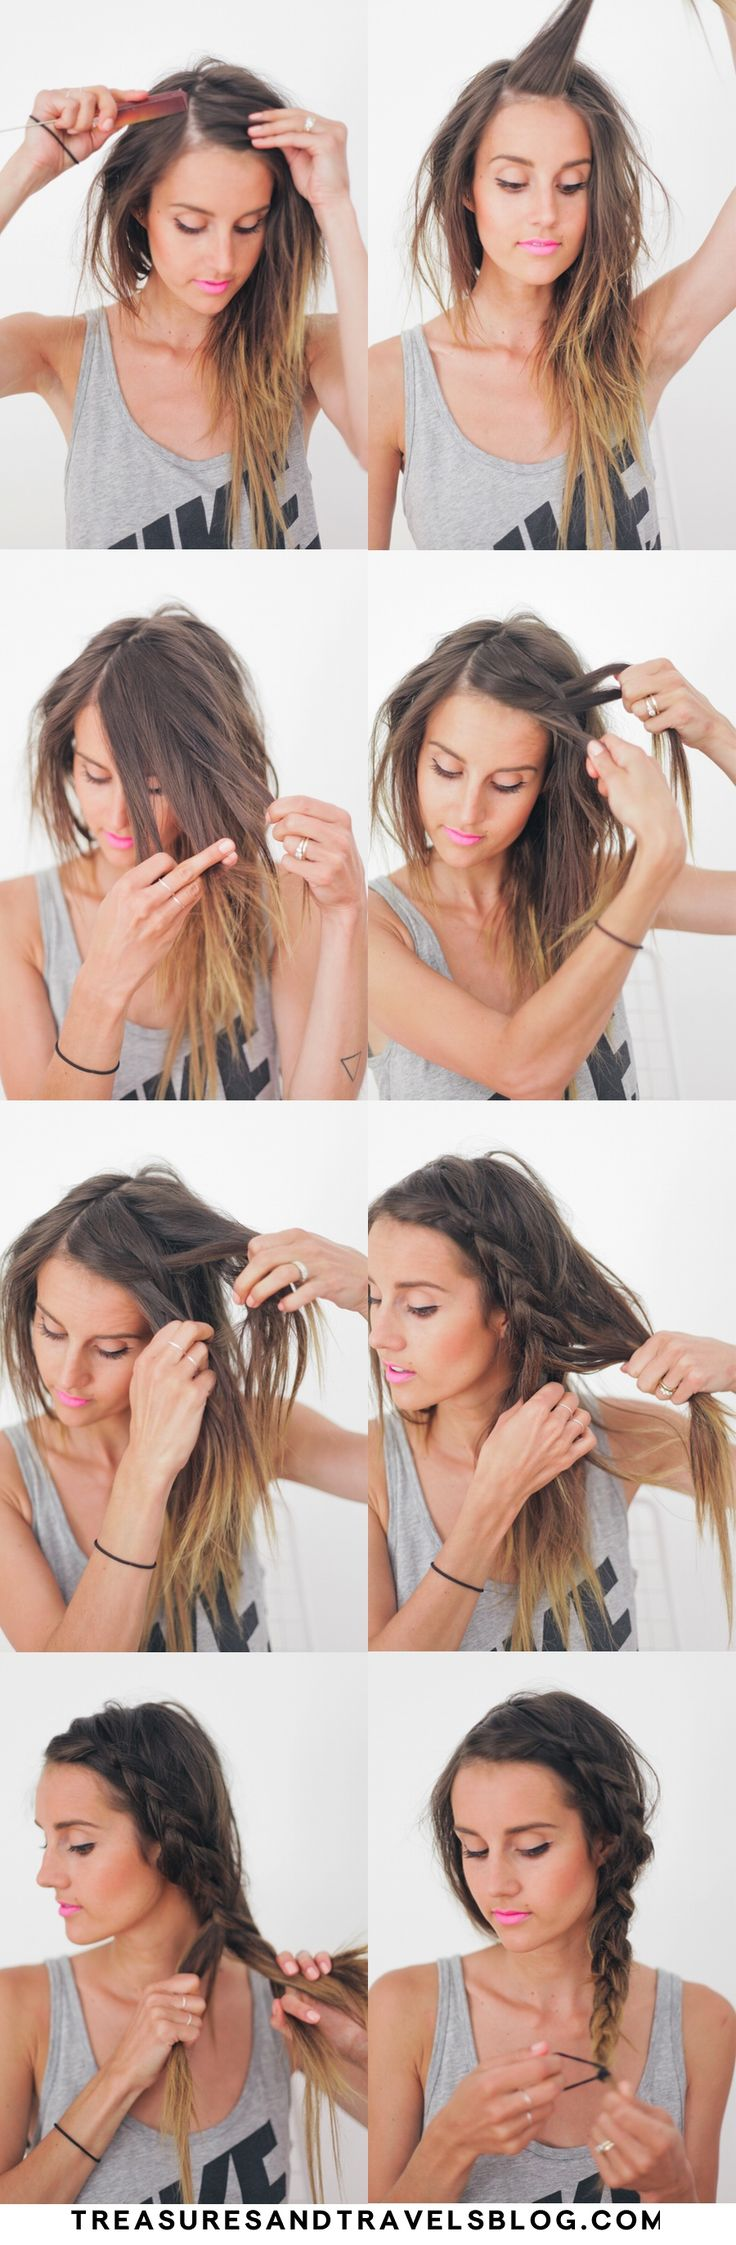 DIY | Summer Braid Hair Tutorial